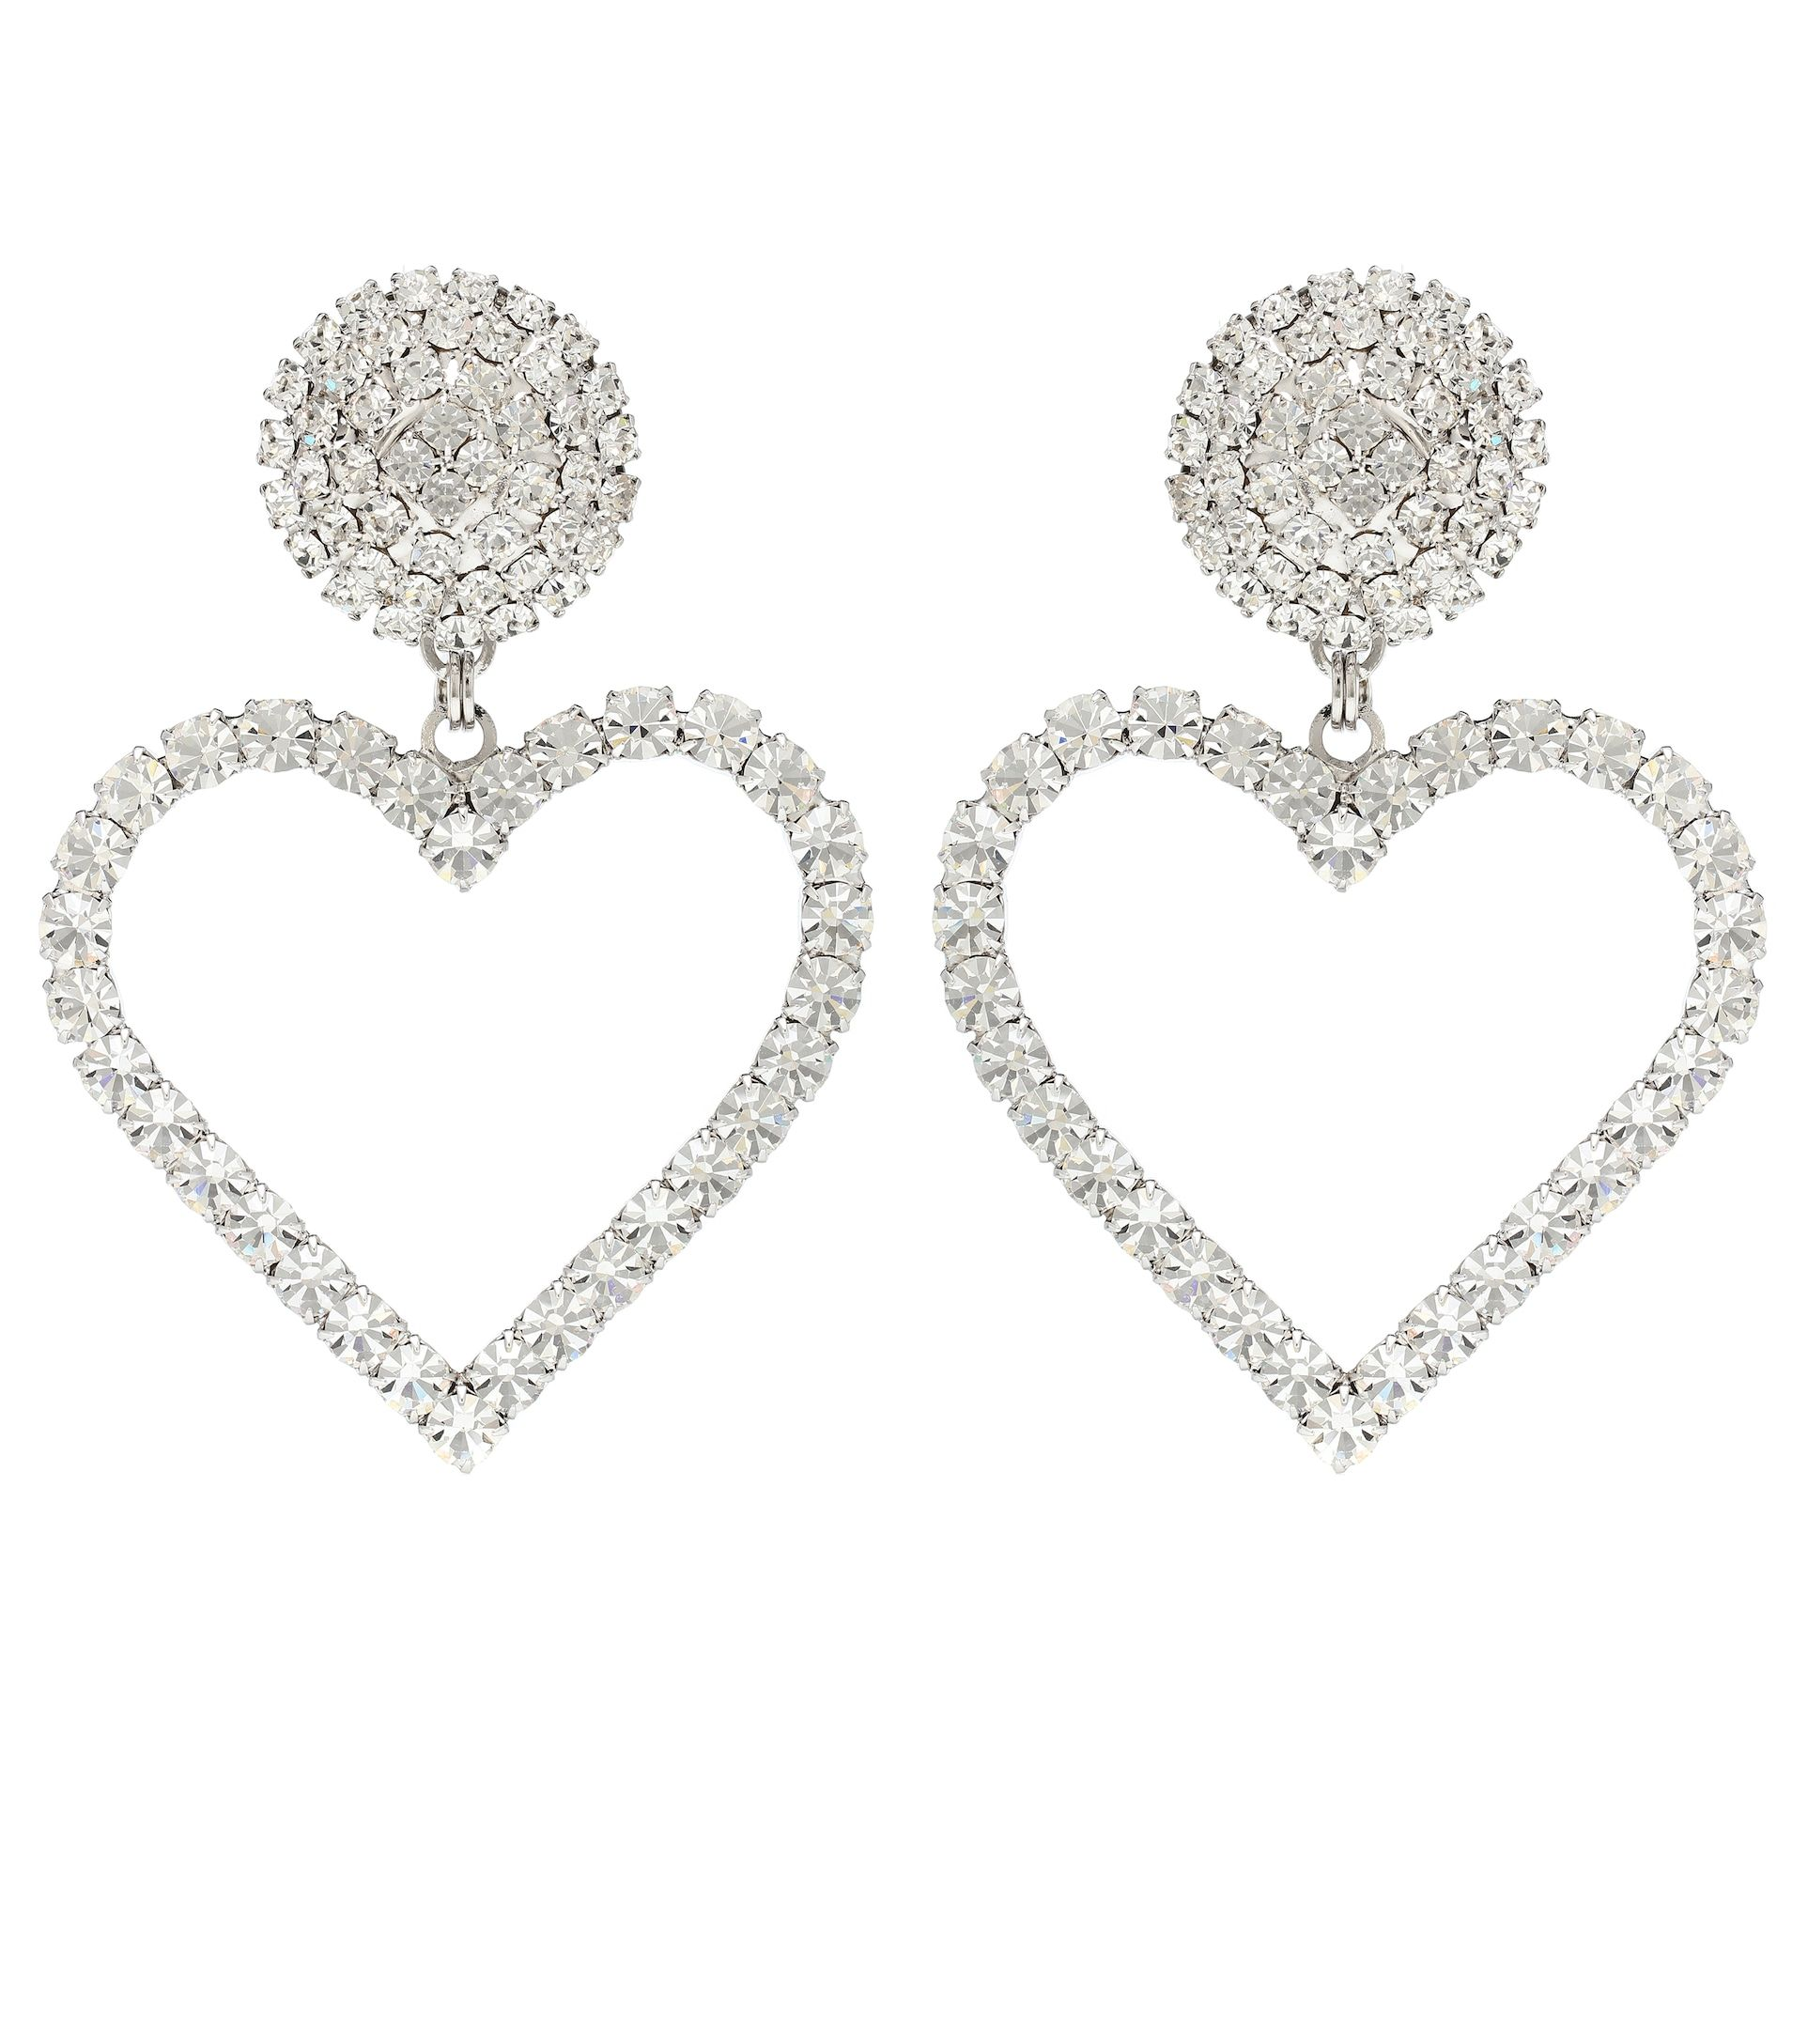 alessandra-rich-heart-shaped-crystal-embellished-earrings